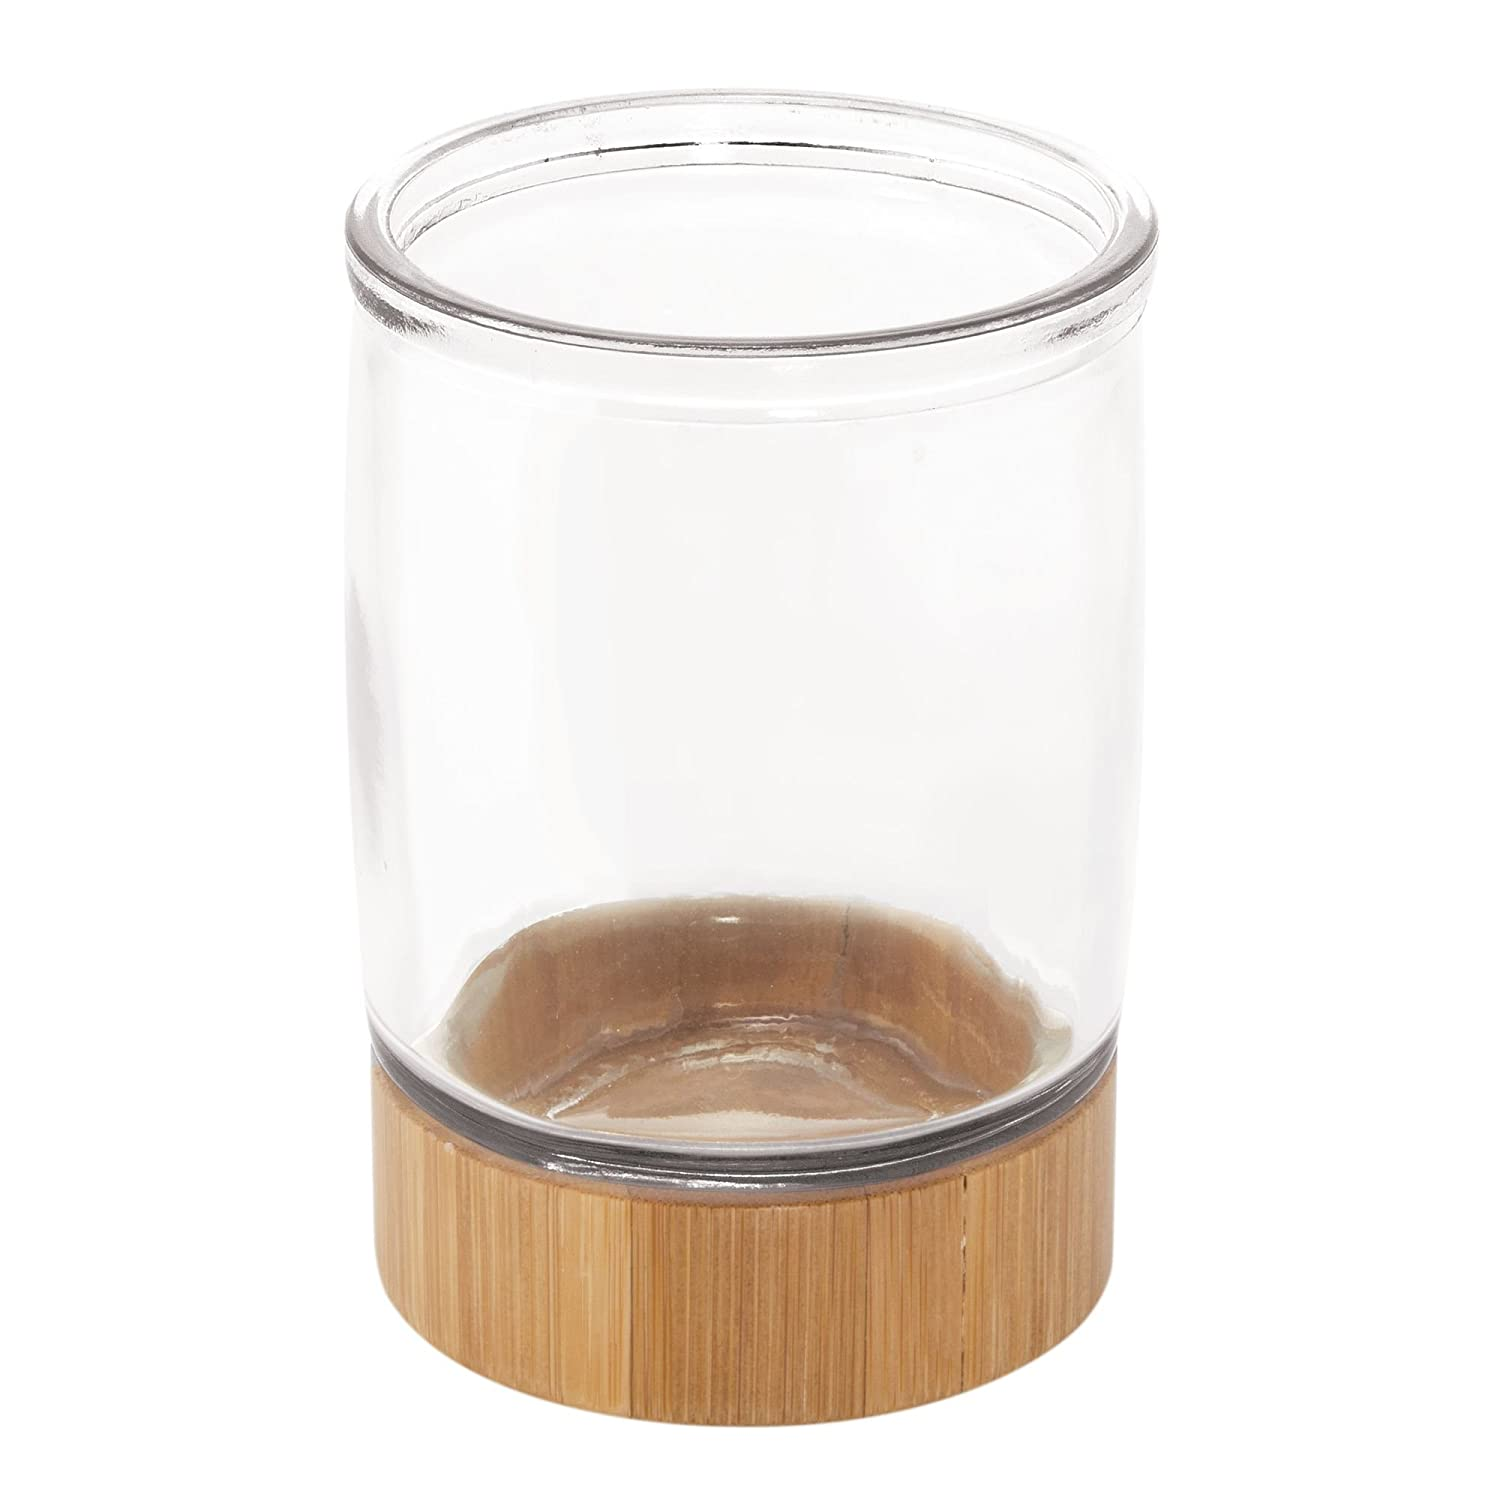 mDesign Glass Bathroom Tumbler - Bathroom Essentials for Rinsing, Drinking or as a Toothbrush Holder - Glass Bathroom Accessories - Clear/Natural MetroDecor Others